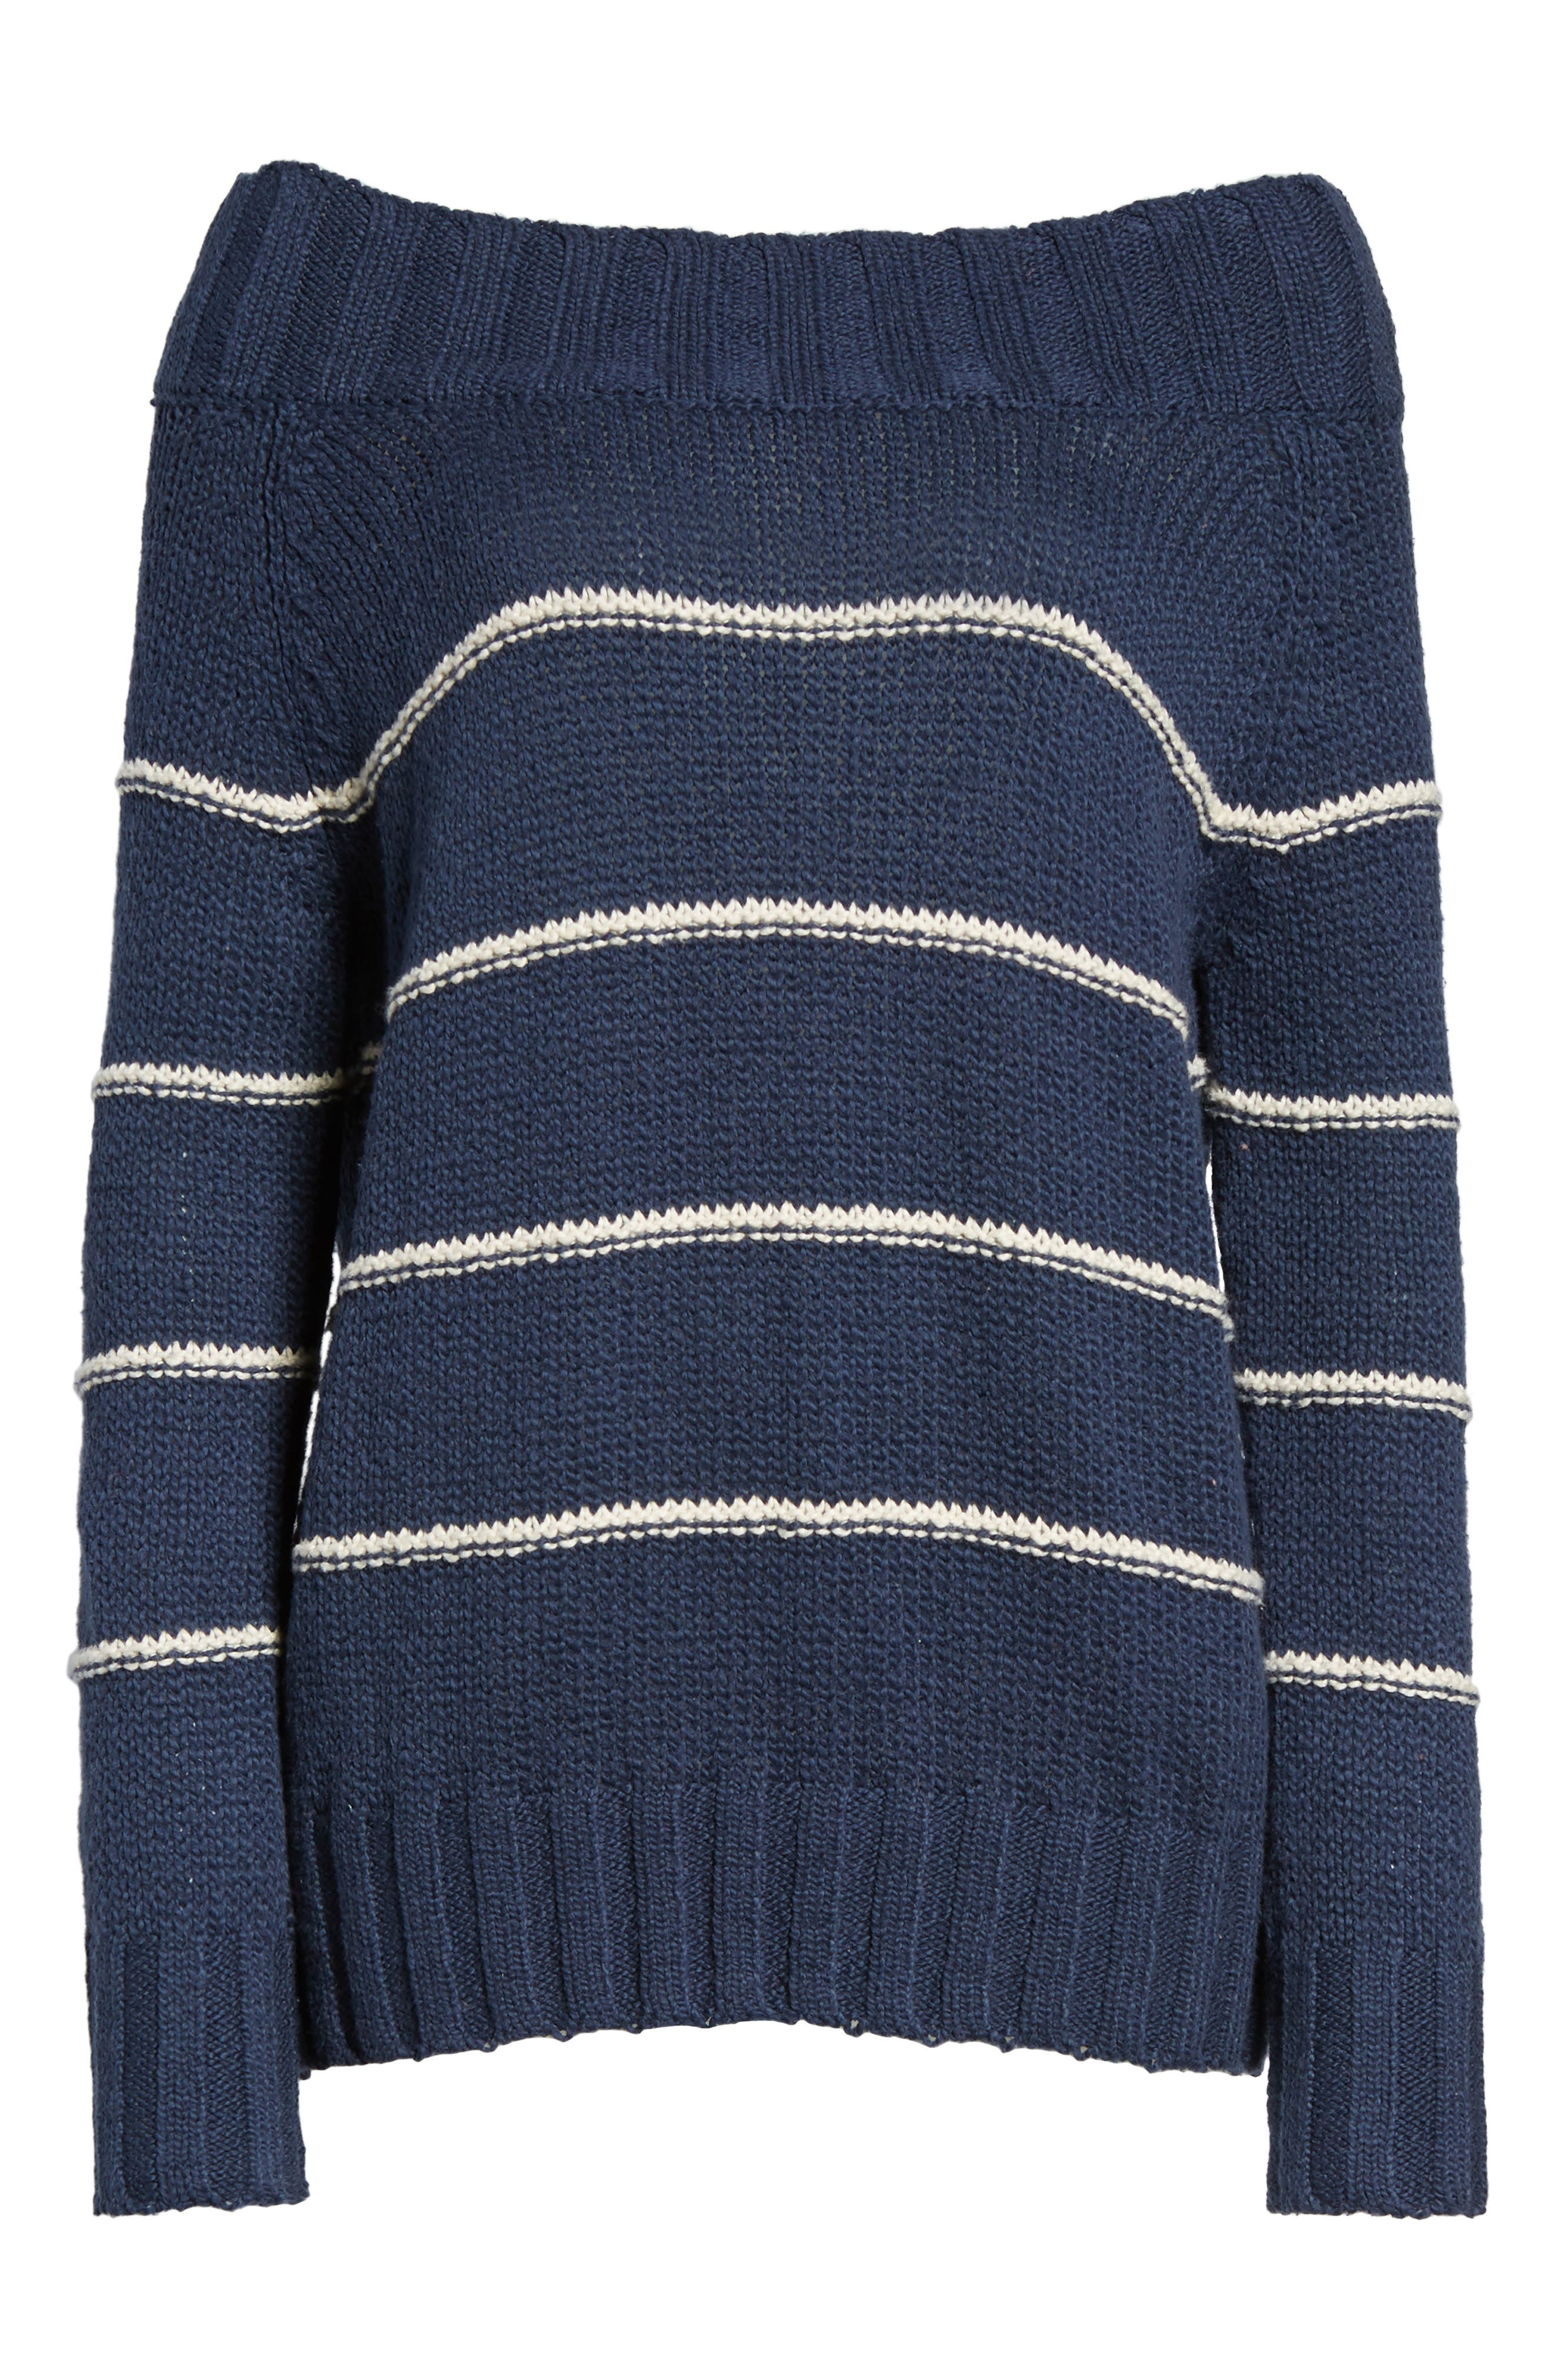 Snuggle Down Off the Shoulder Sweater,                             Alternate thumbnail 6, color,                             400